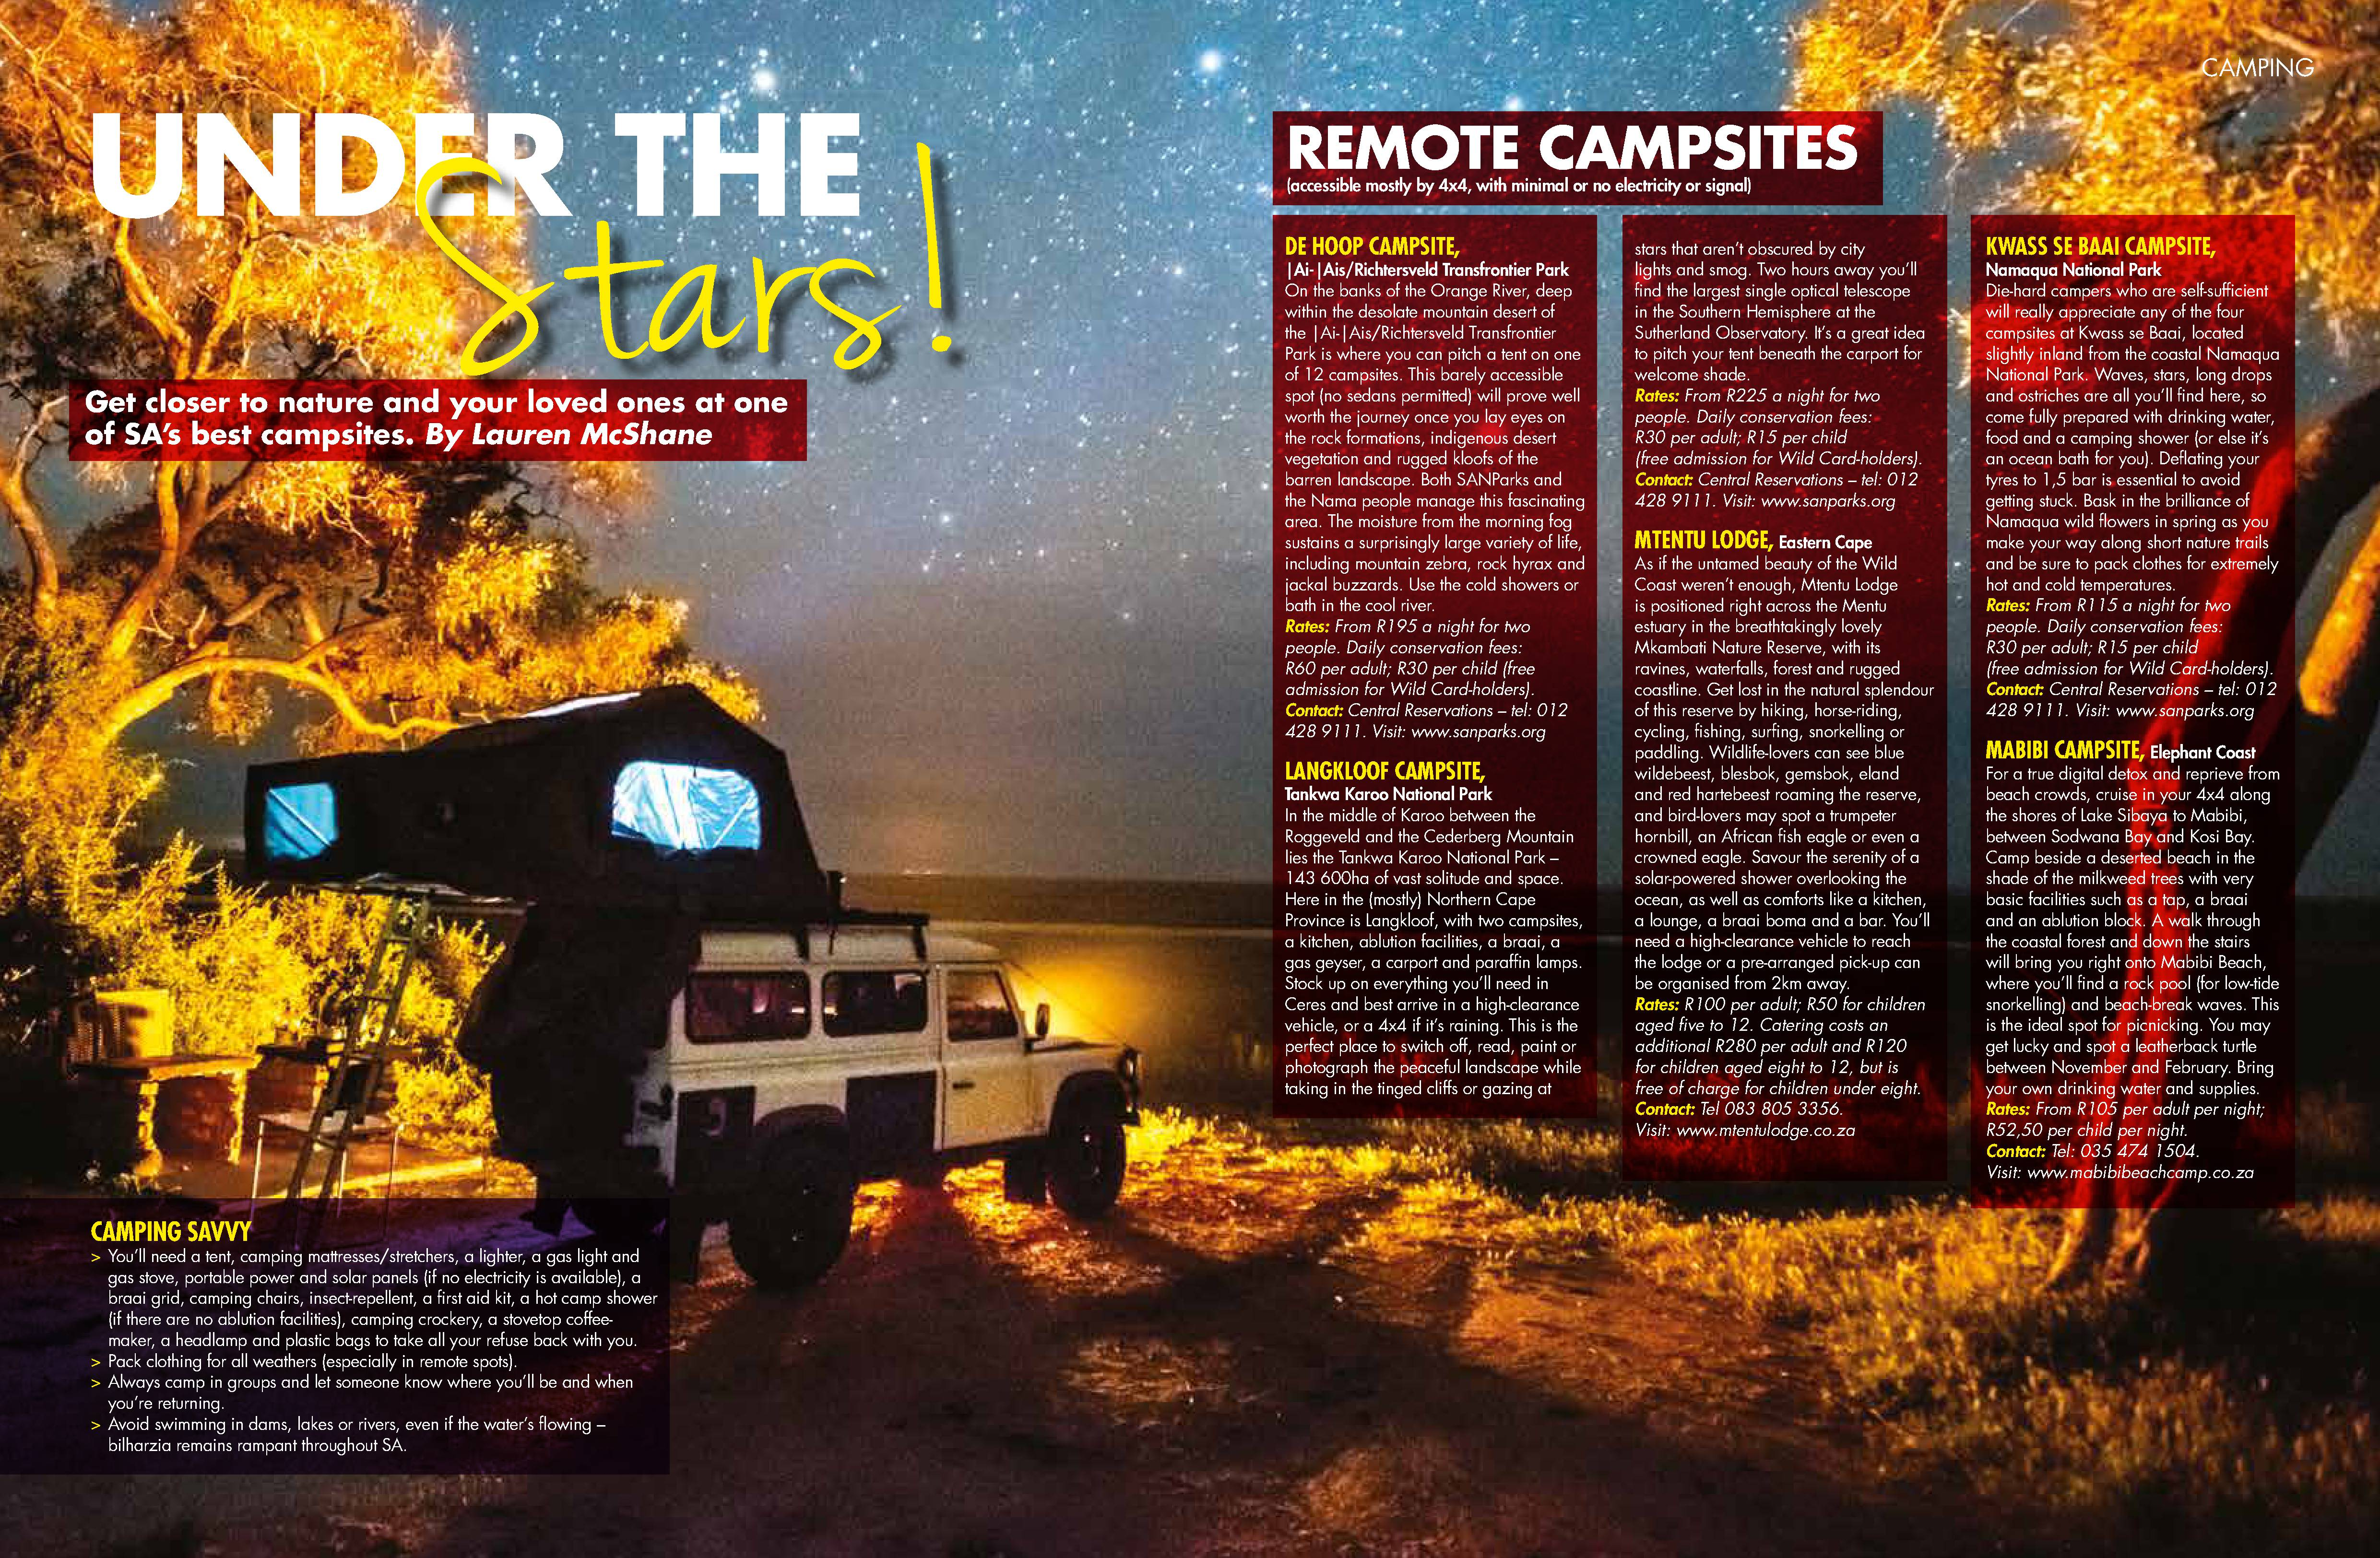 Top 10 South African Campsites